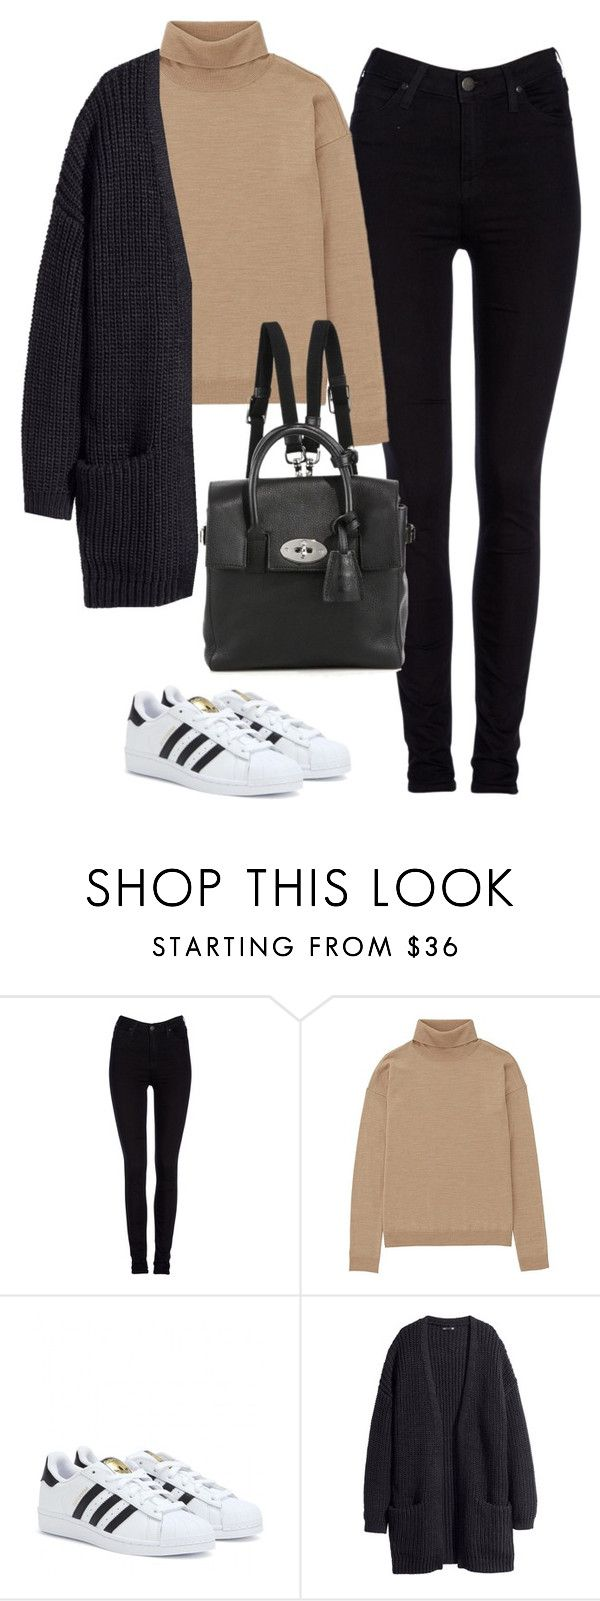 """Untitled #470"" by christyandnef on Polyvore featuring Lee, Uniqlo, adidas, H&M, Mulberry, women's clothing, women, female, woman and misses"